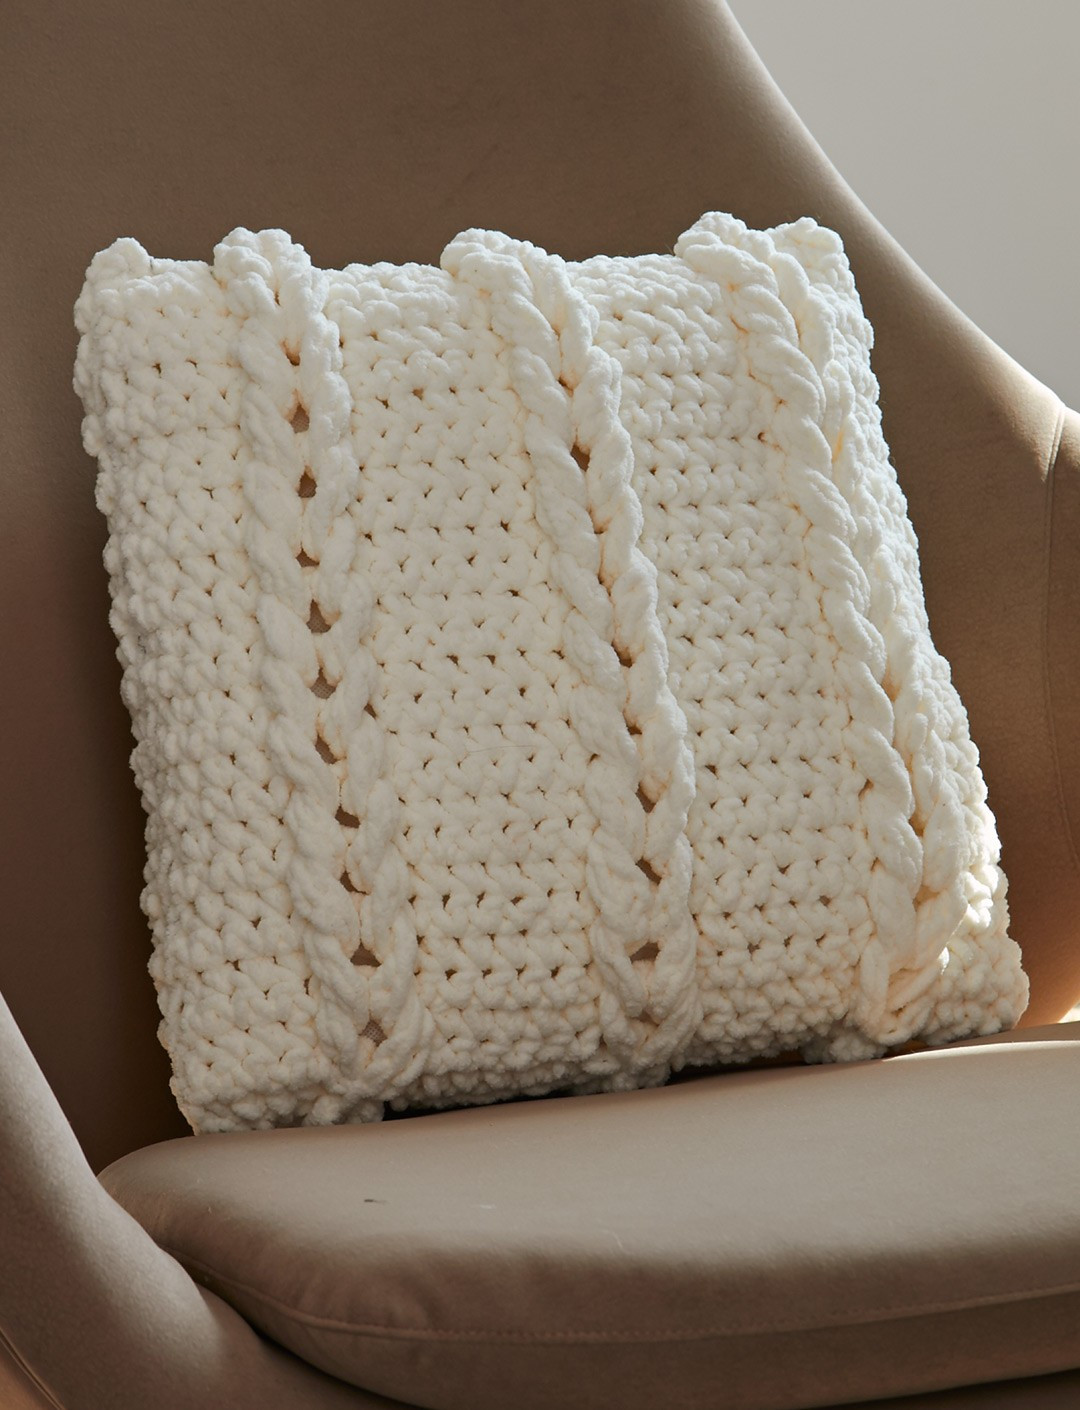 Bernat Crochet Patterns Lovely Bernat Chain Links Pillow Crochet Pattern Of Awesome 45 Photos Bernat Crochet Patterns